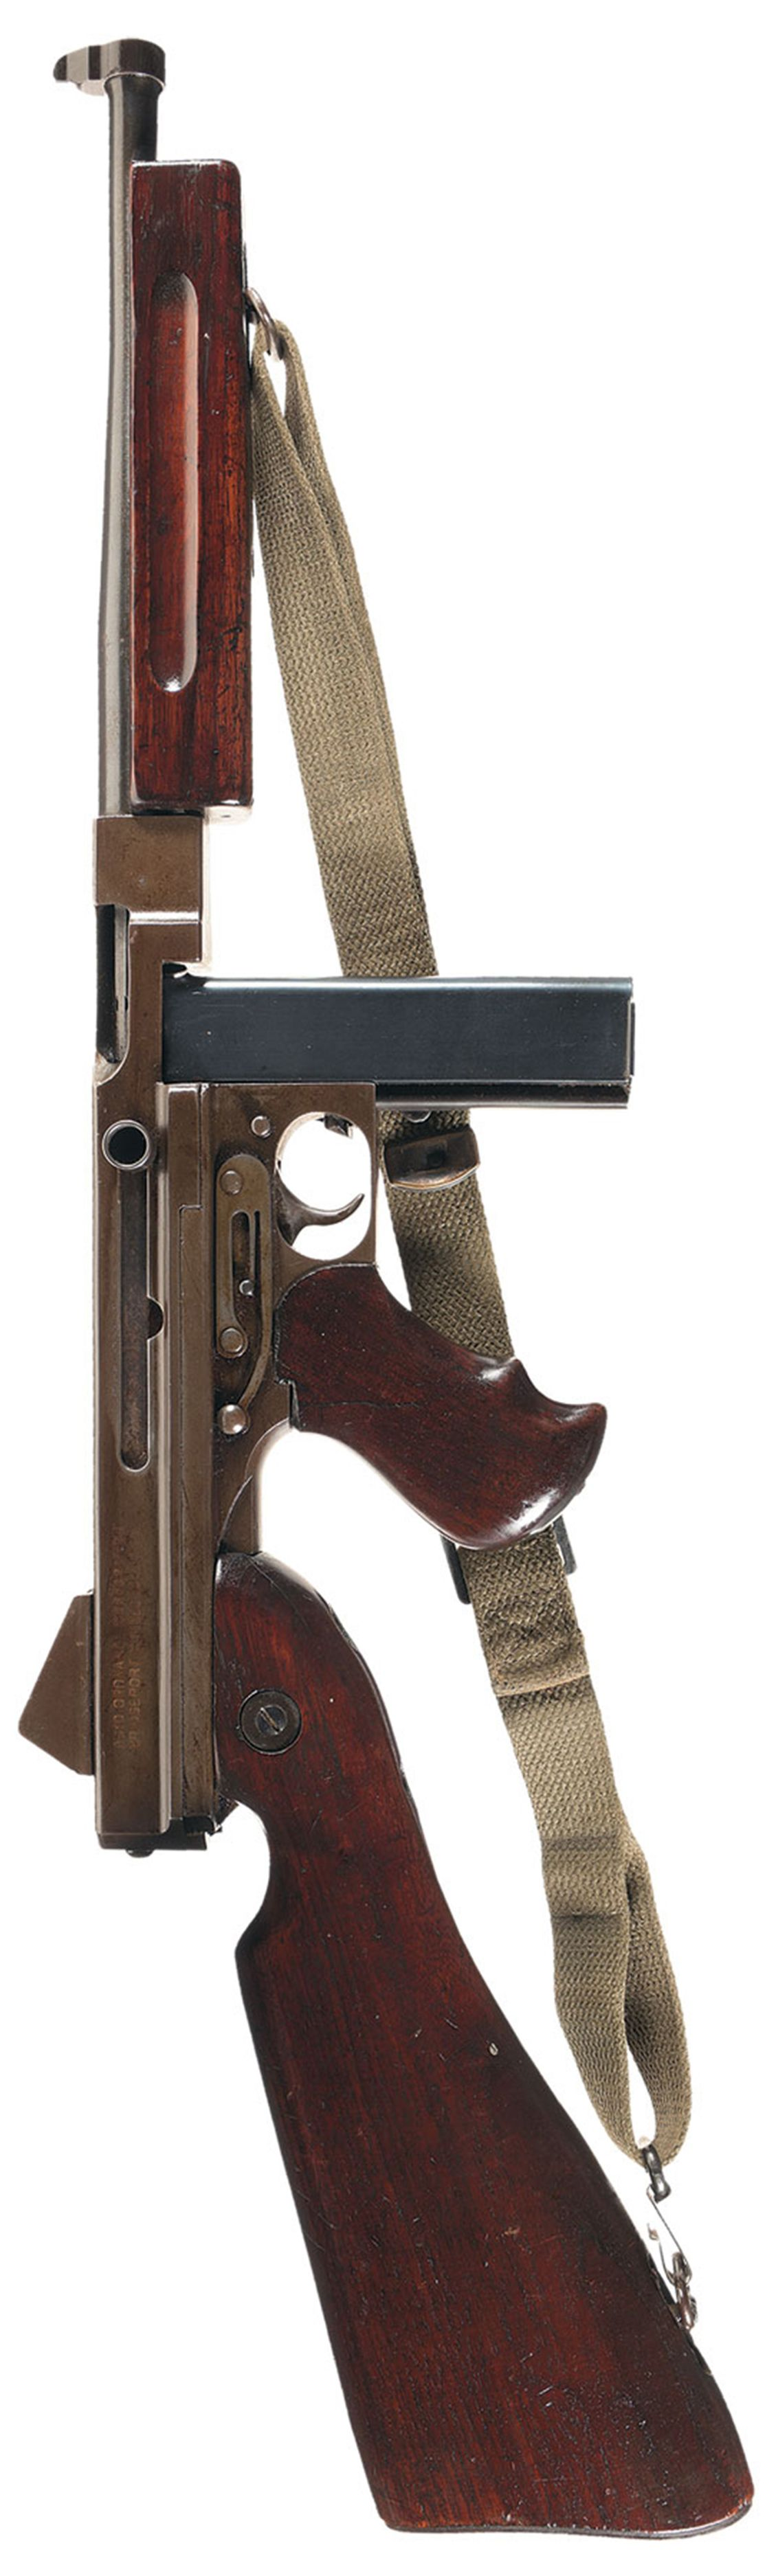 Exceptional World War II Thompson M1A1 Submachine Gun with Acces